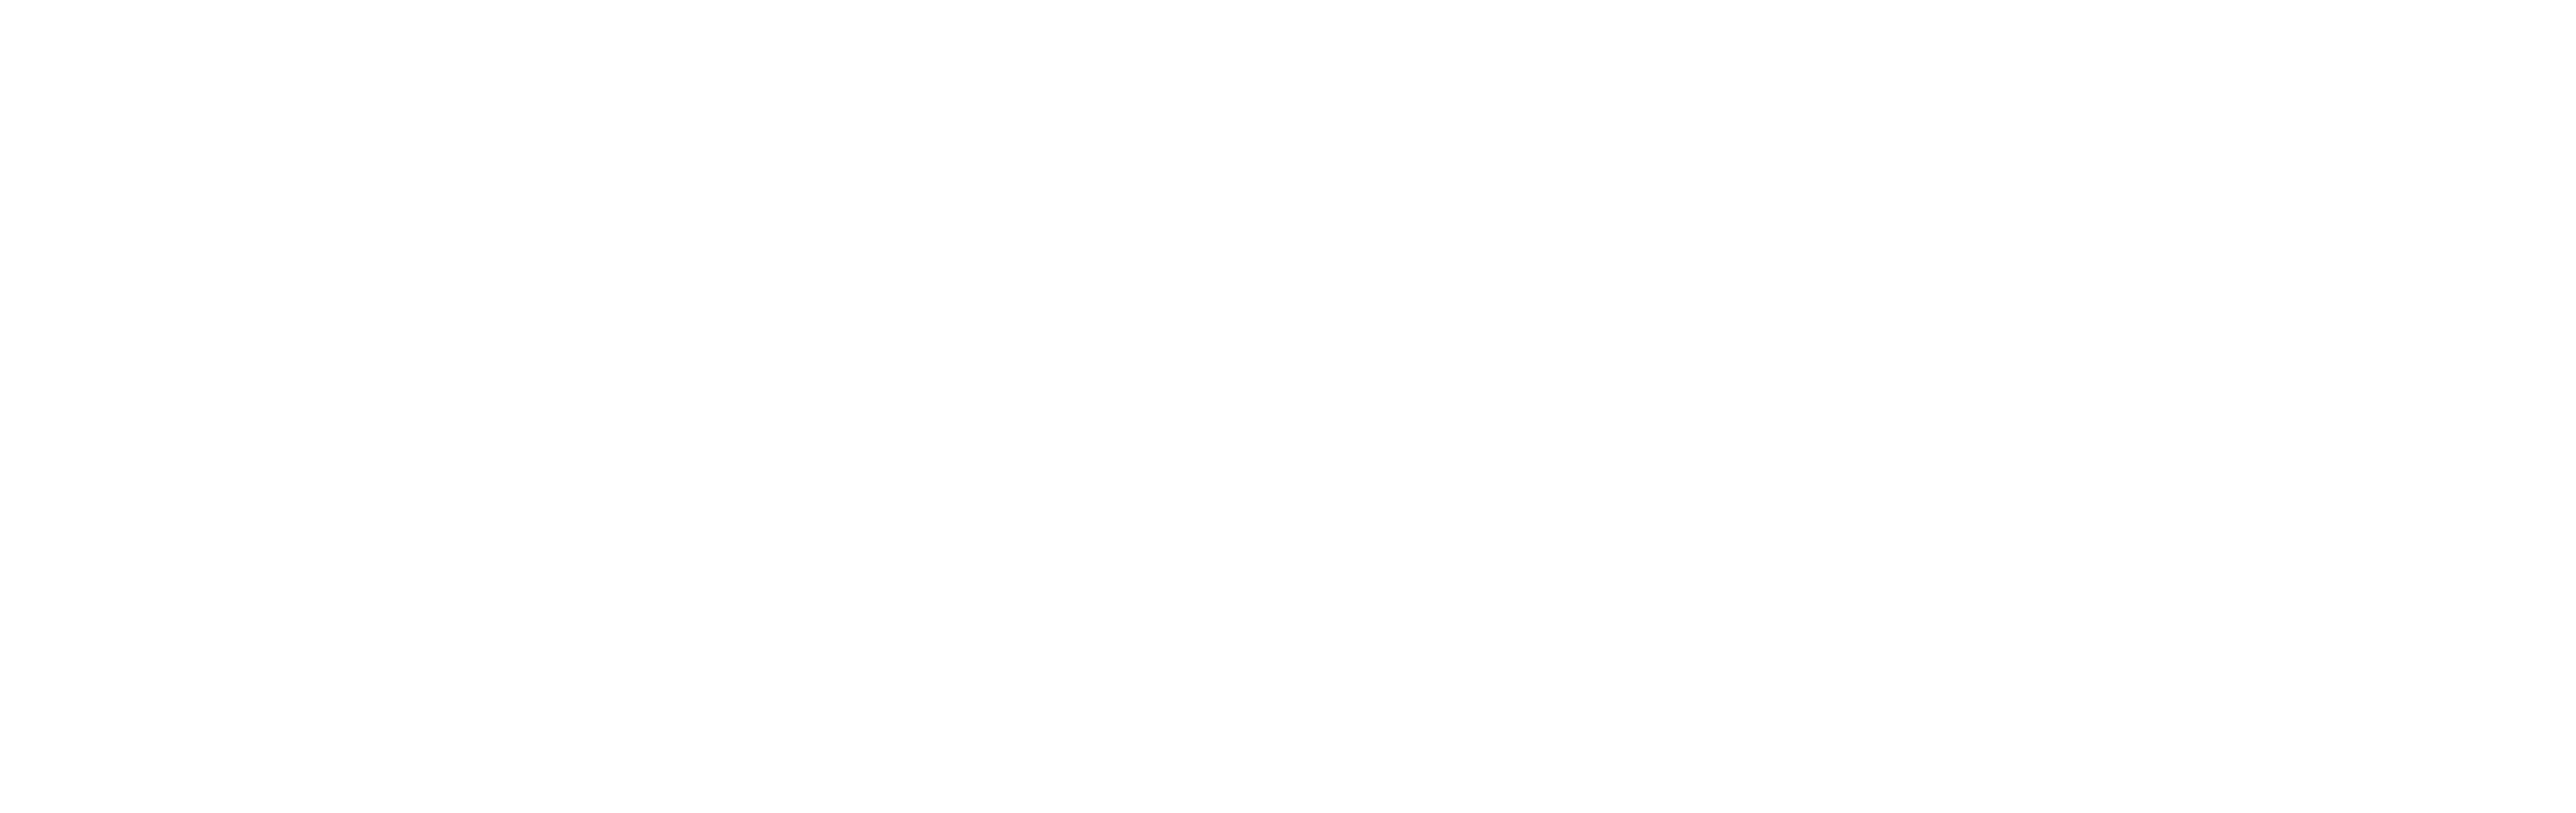 Fanzee | Where The Real Fans Are